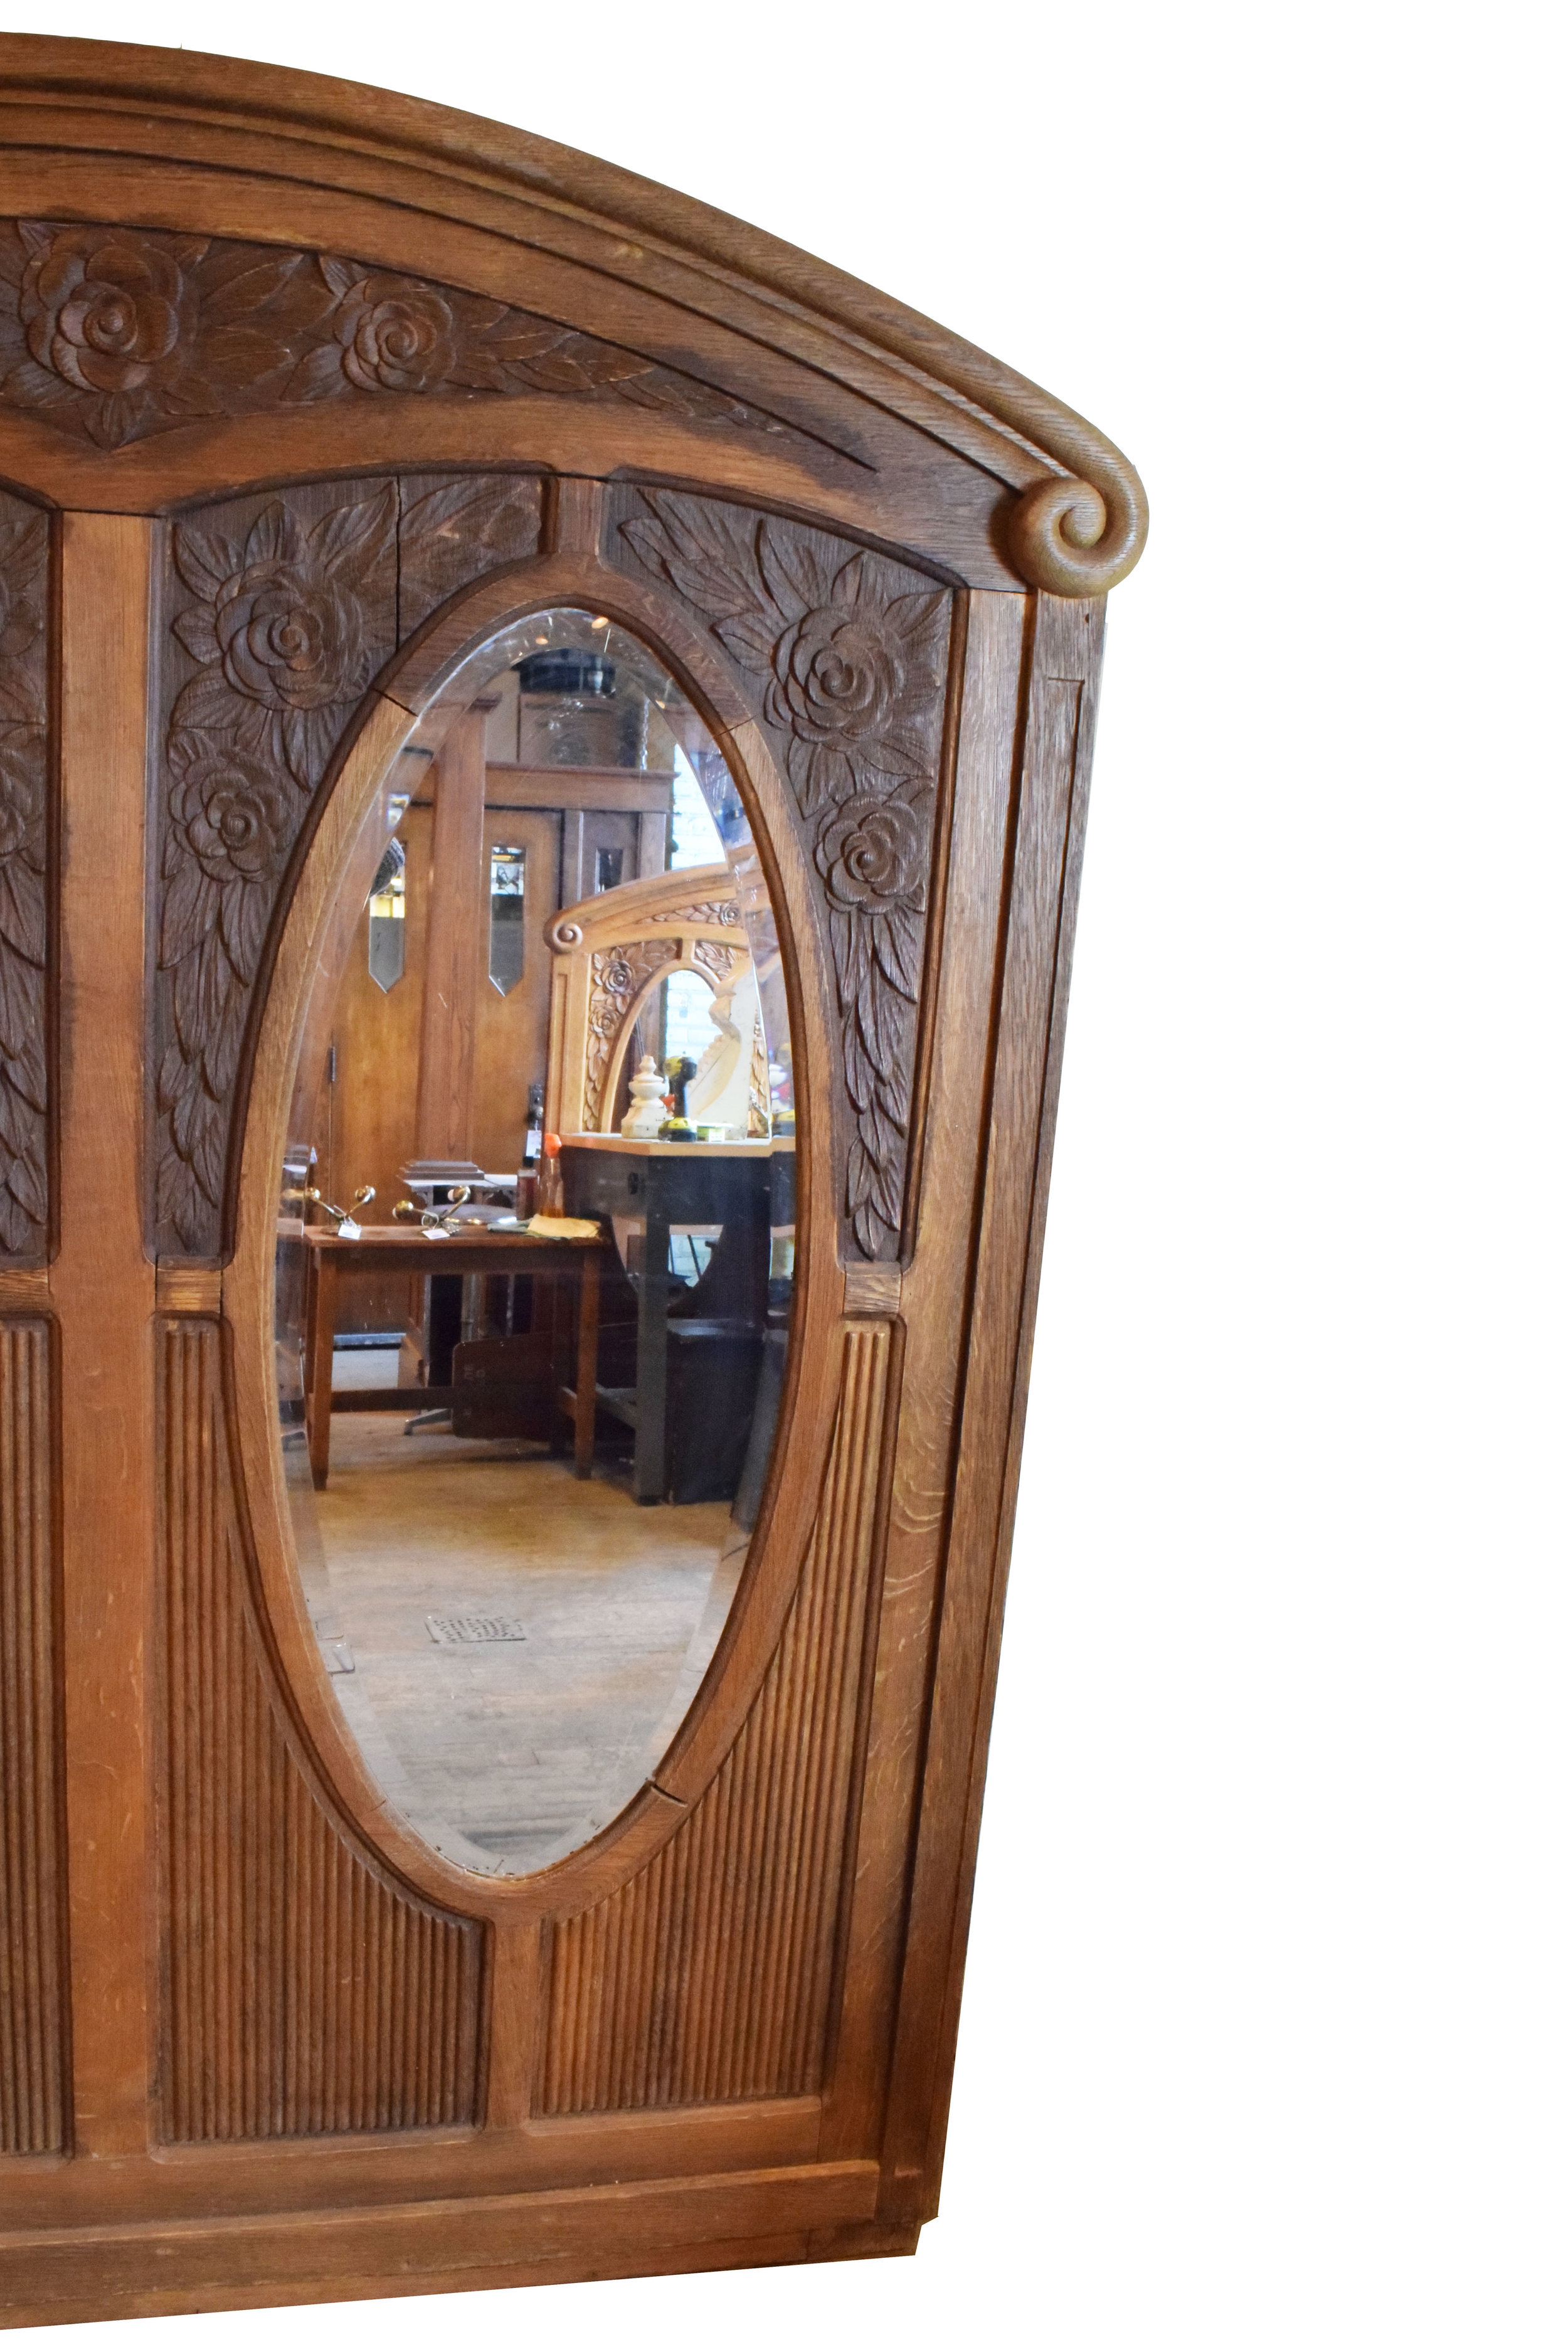 46992-oak-frame-with-oval-mirrors-side-detail.jpg